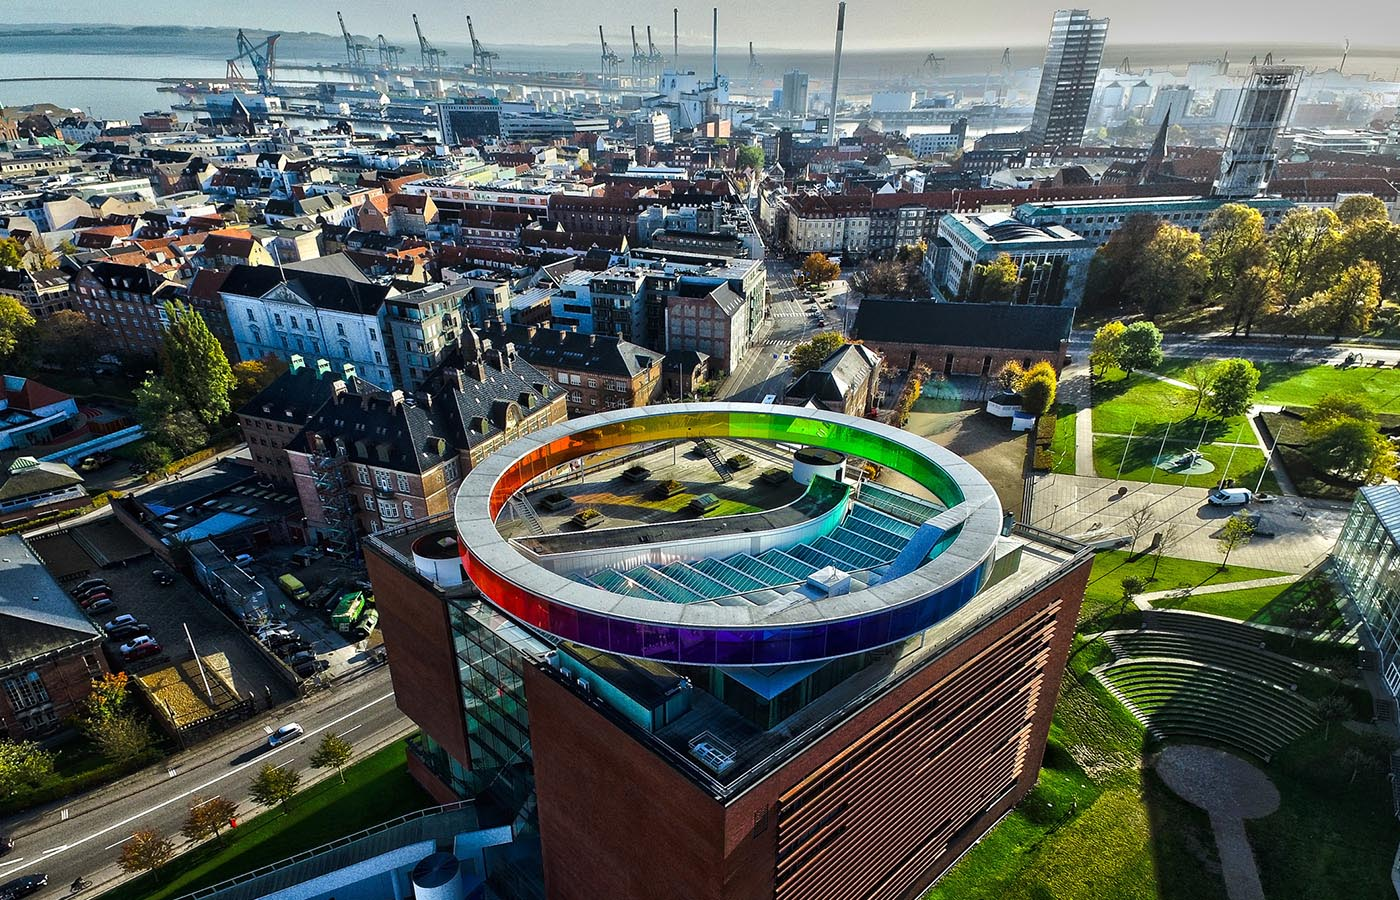 Aarhus aims to become carbon neutral by 2030. Image credit - Dennis Borup